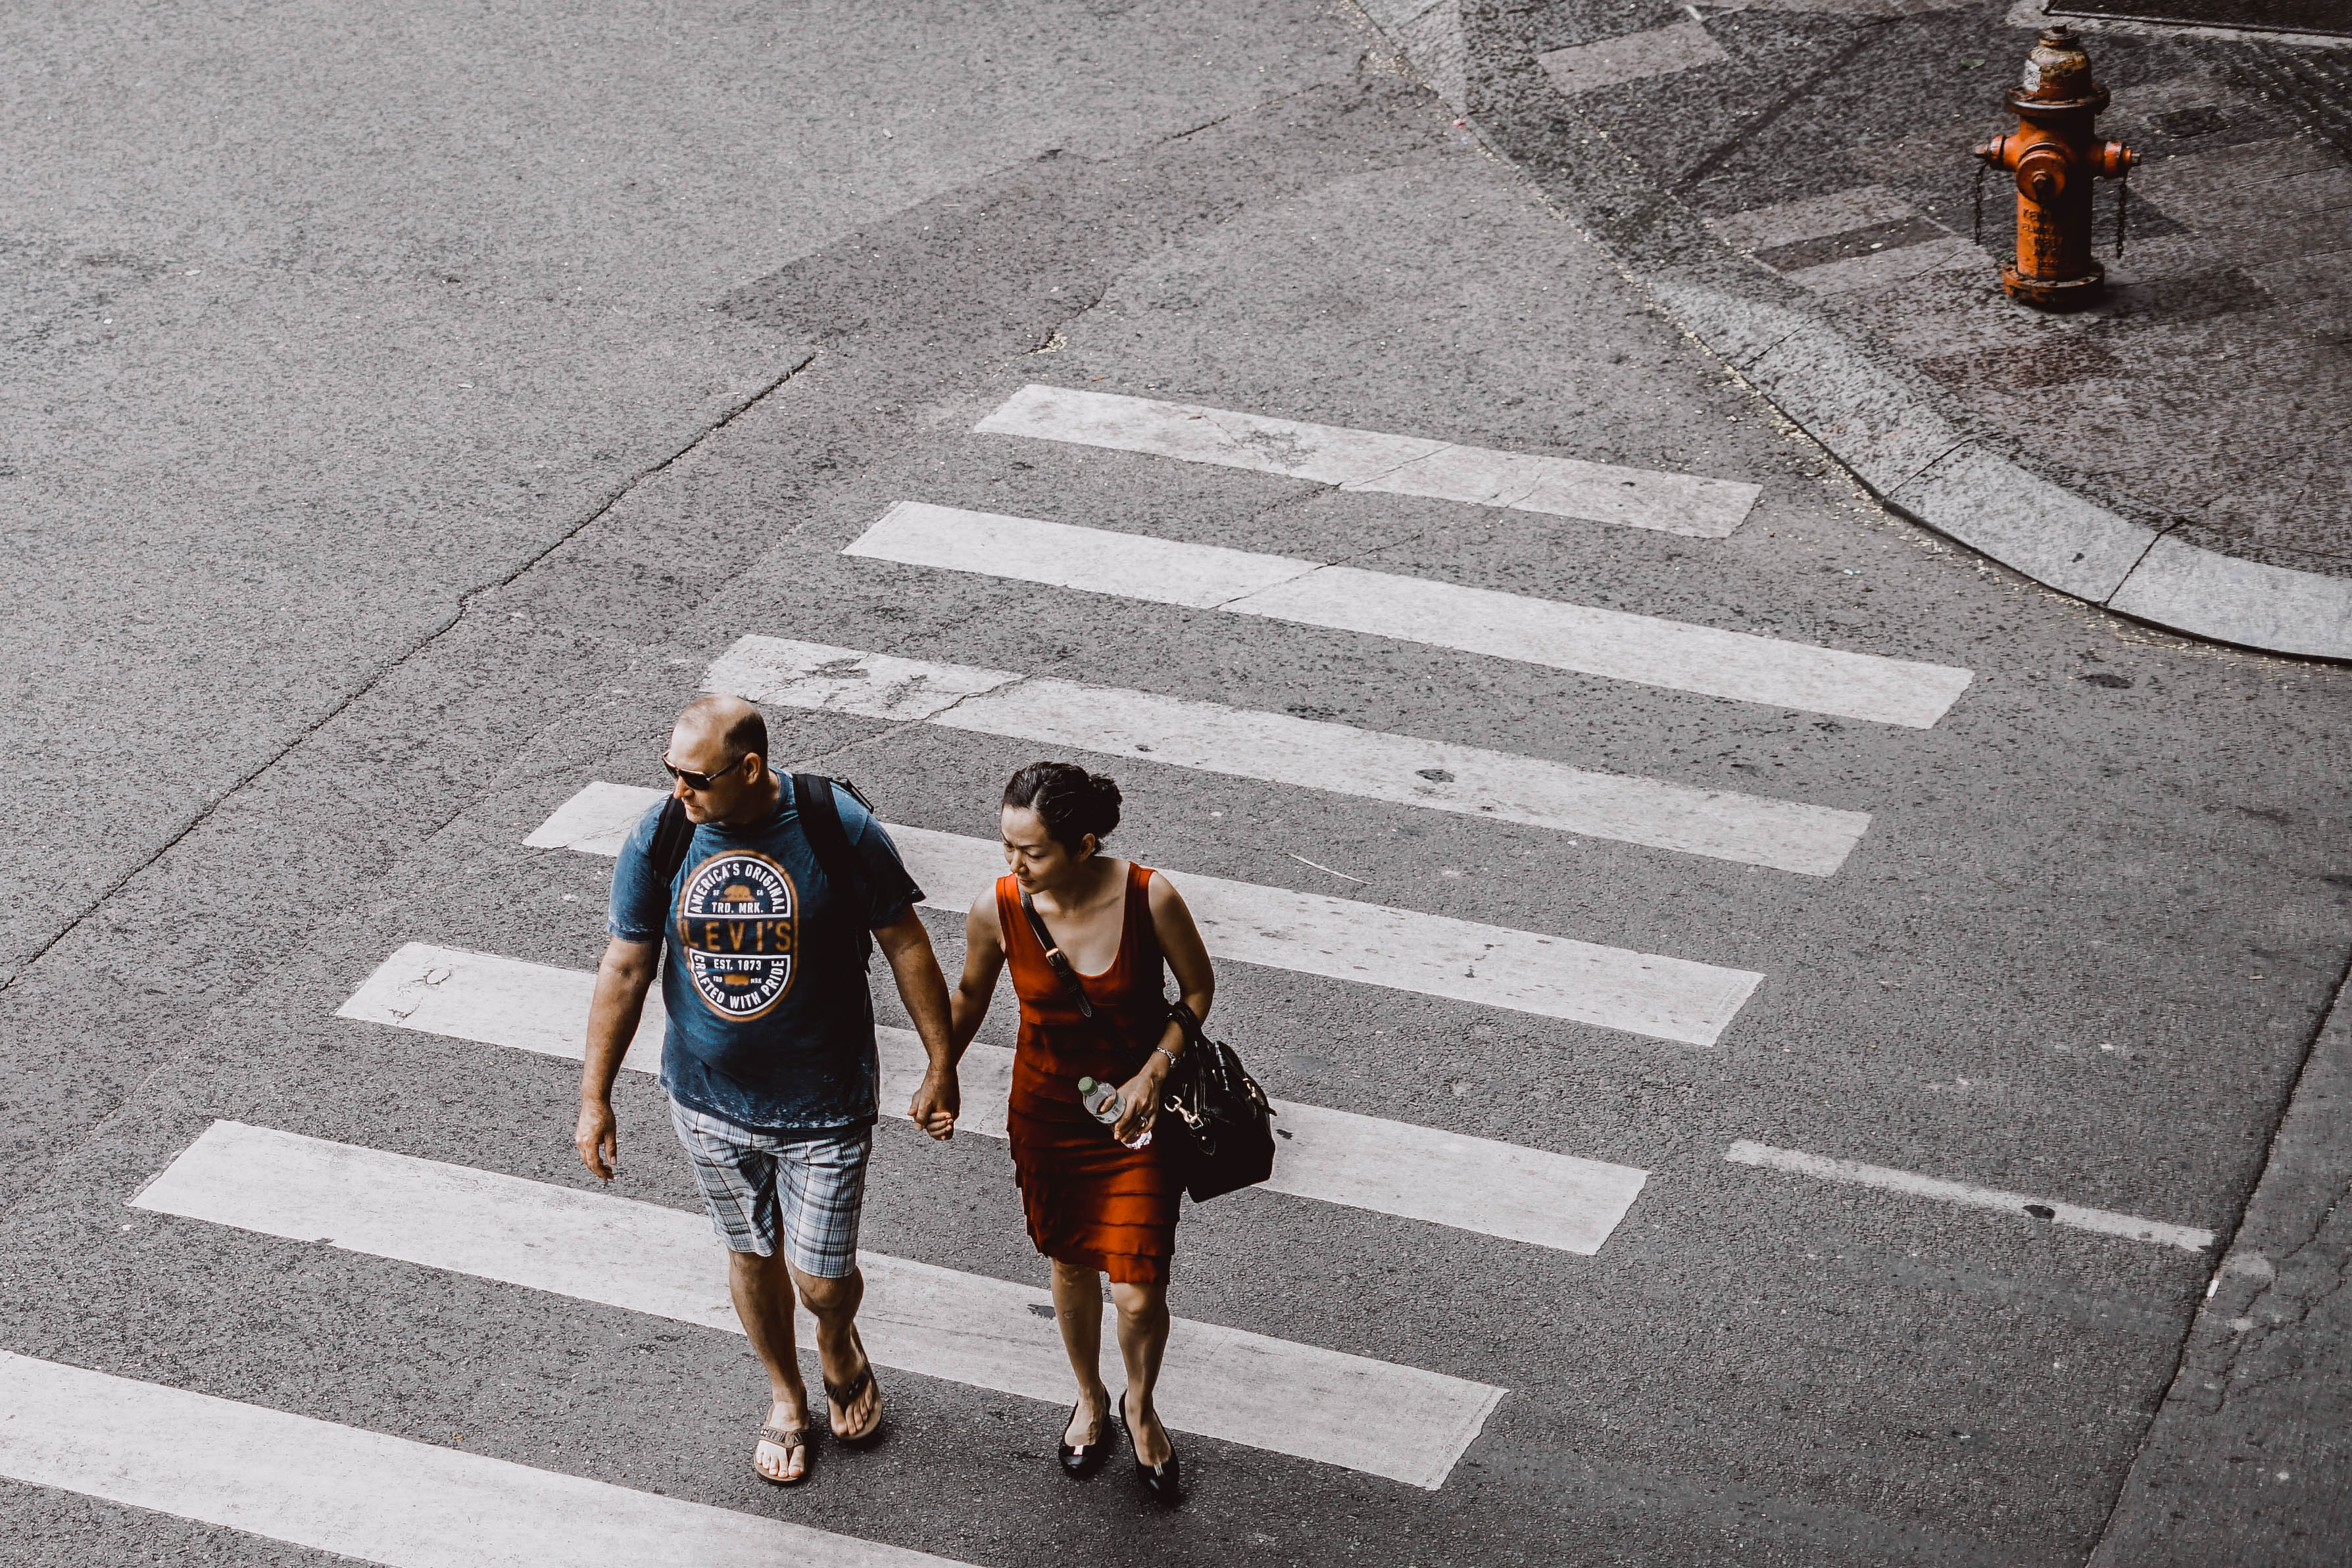 man and woman walking on pedestrian lane during daytime